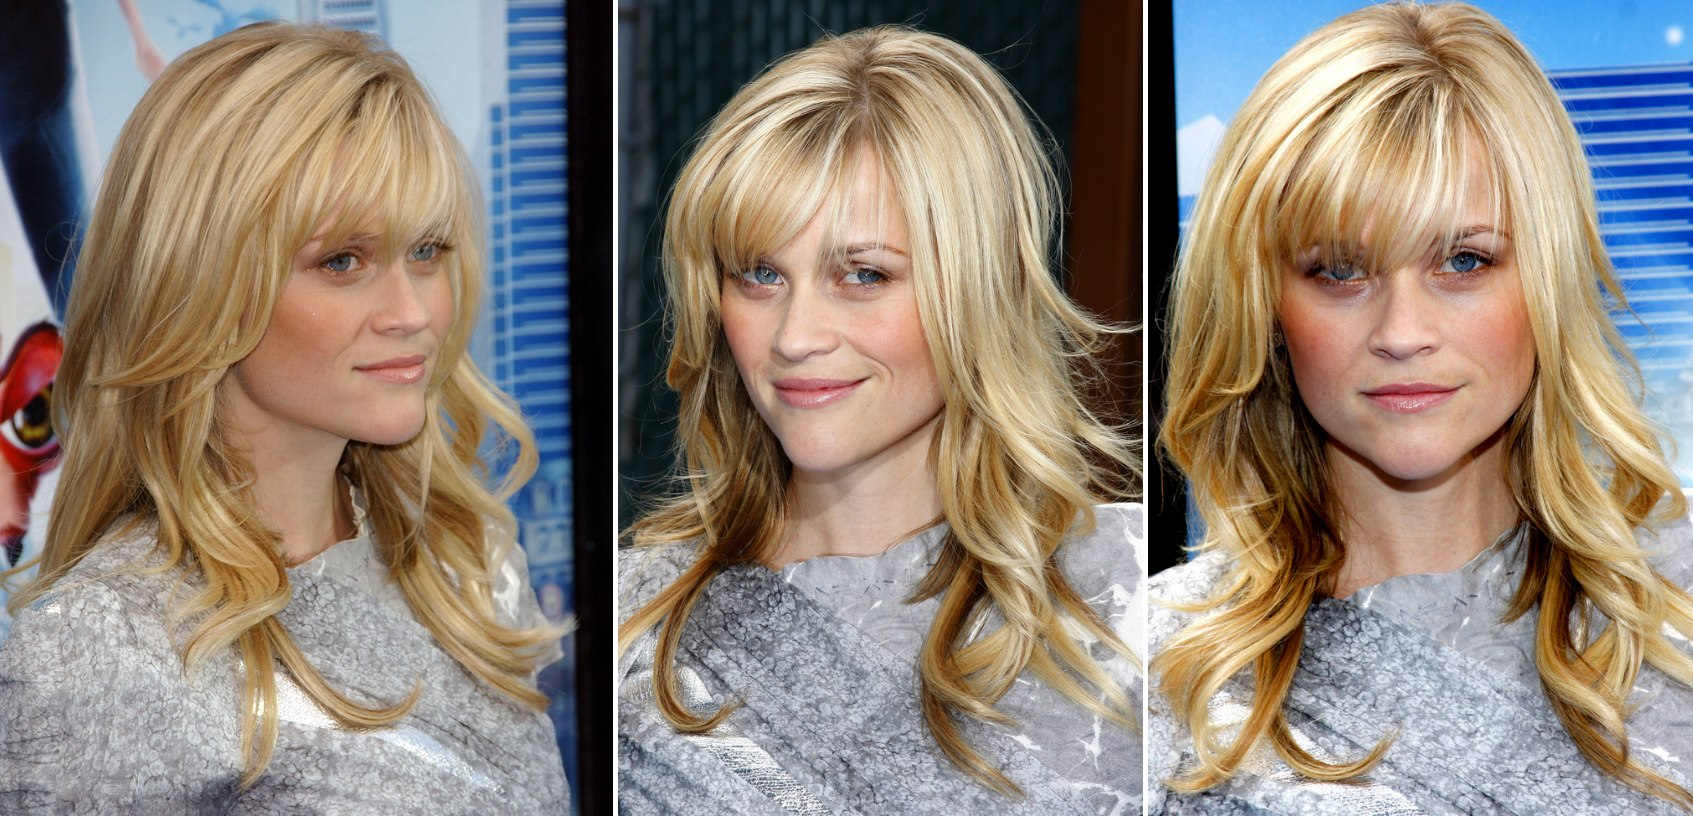 Reese Witherspoon's Hair With Over The Brows Bangs And